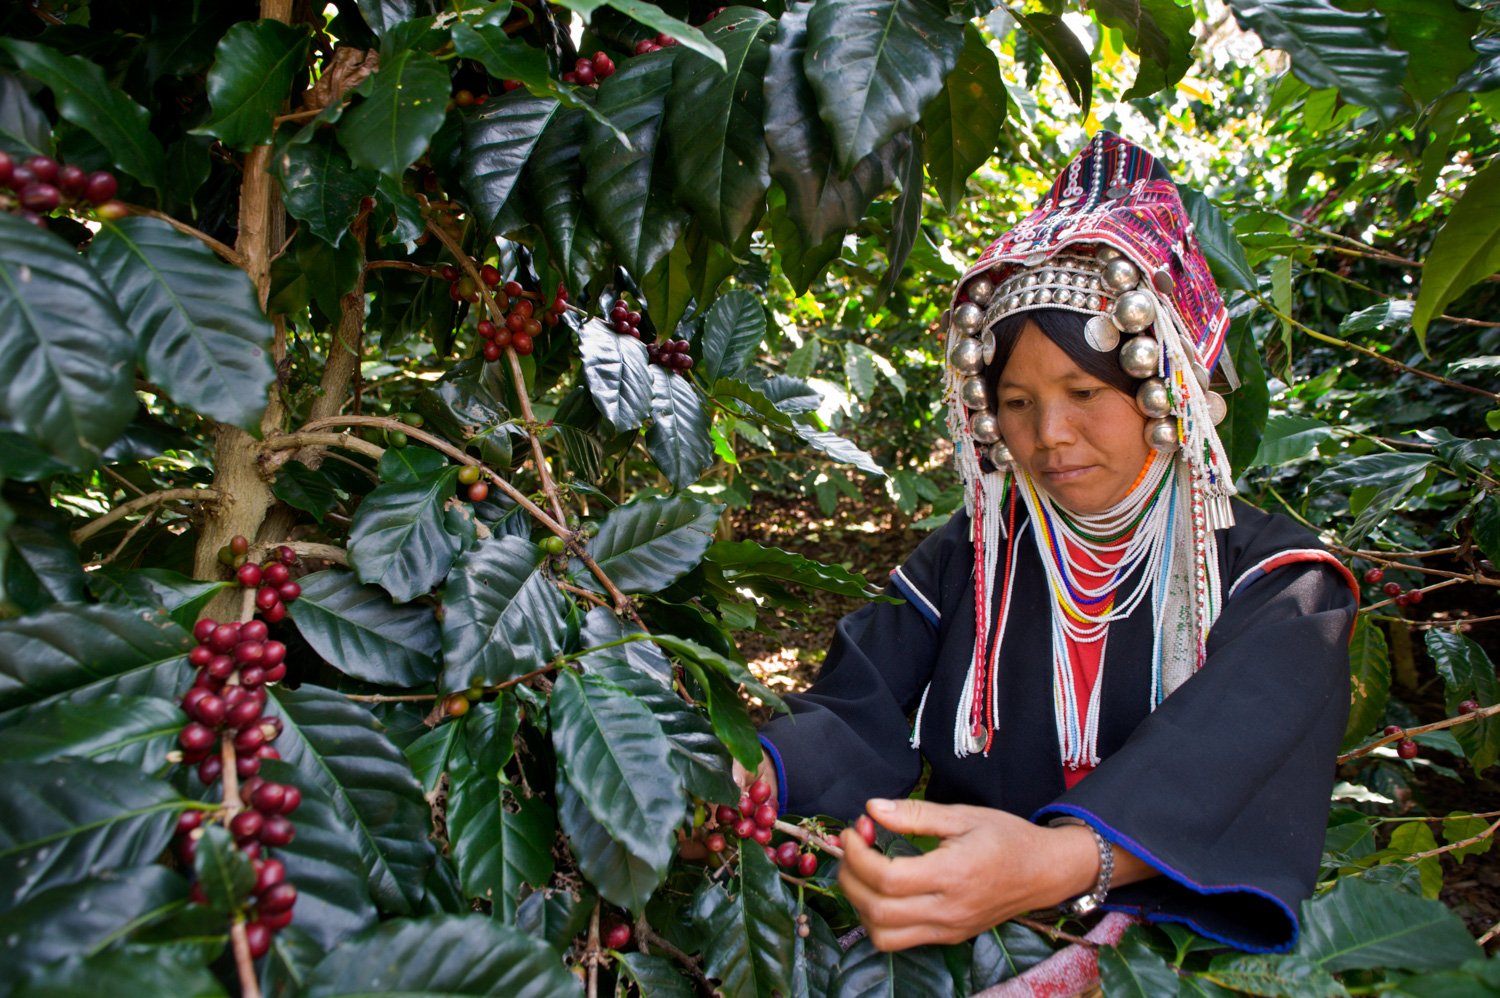 Akha woman picking coffee for curiosity and knowledge in photography